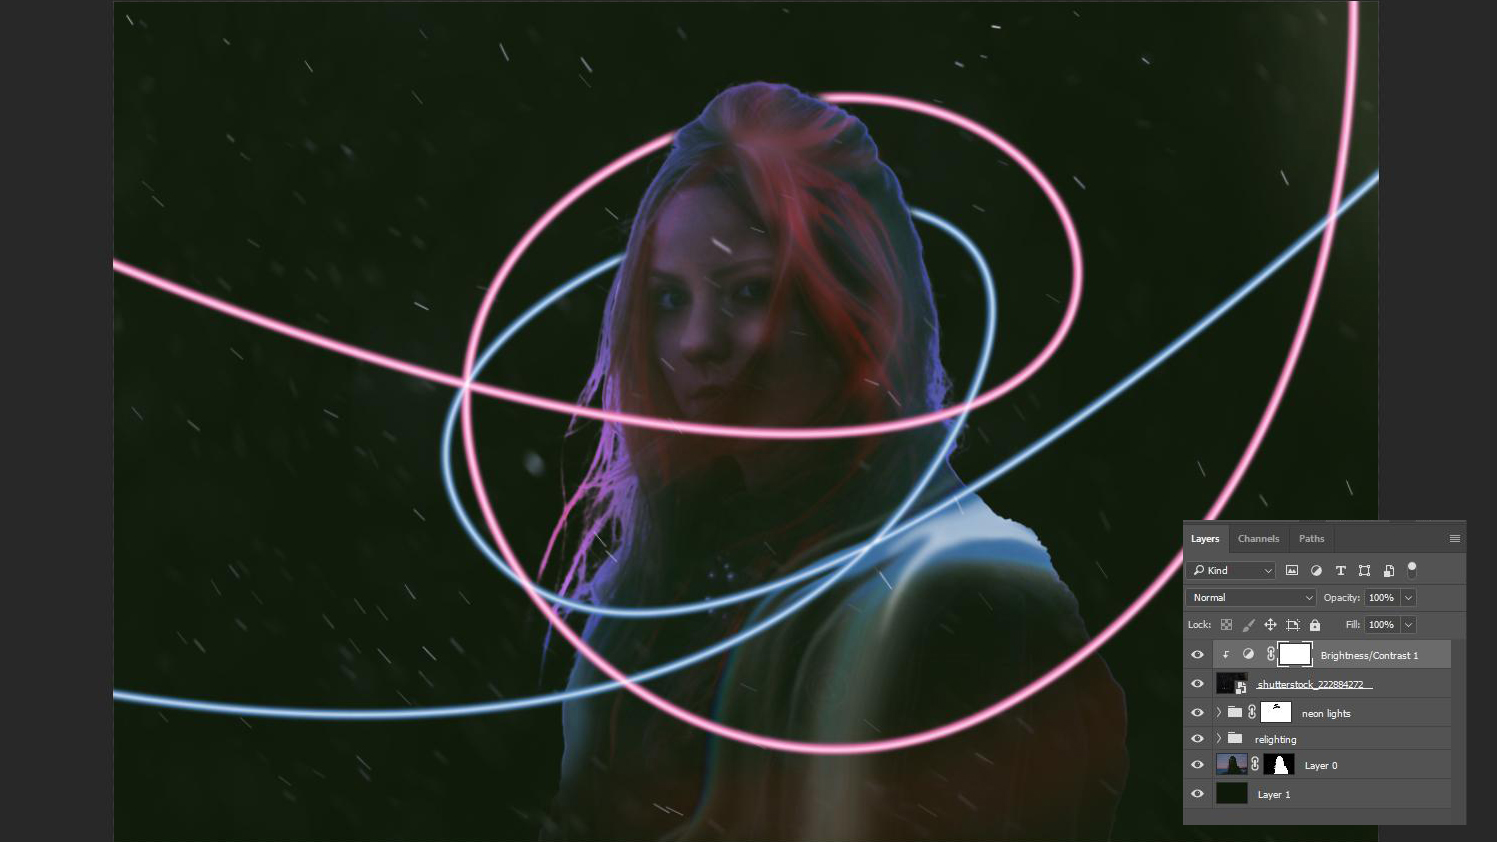 Image of woman with neon lines around her, with Photoshop layers named